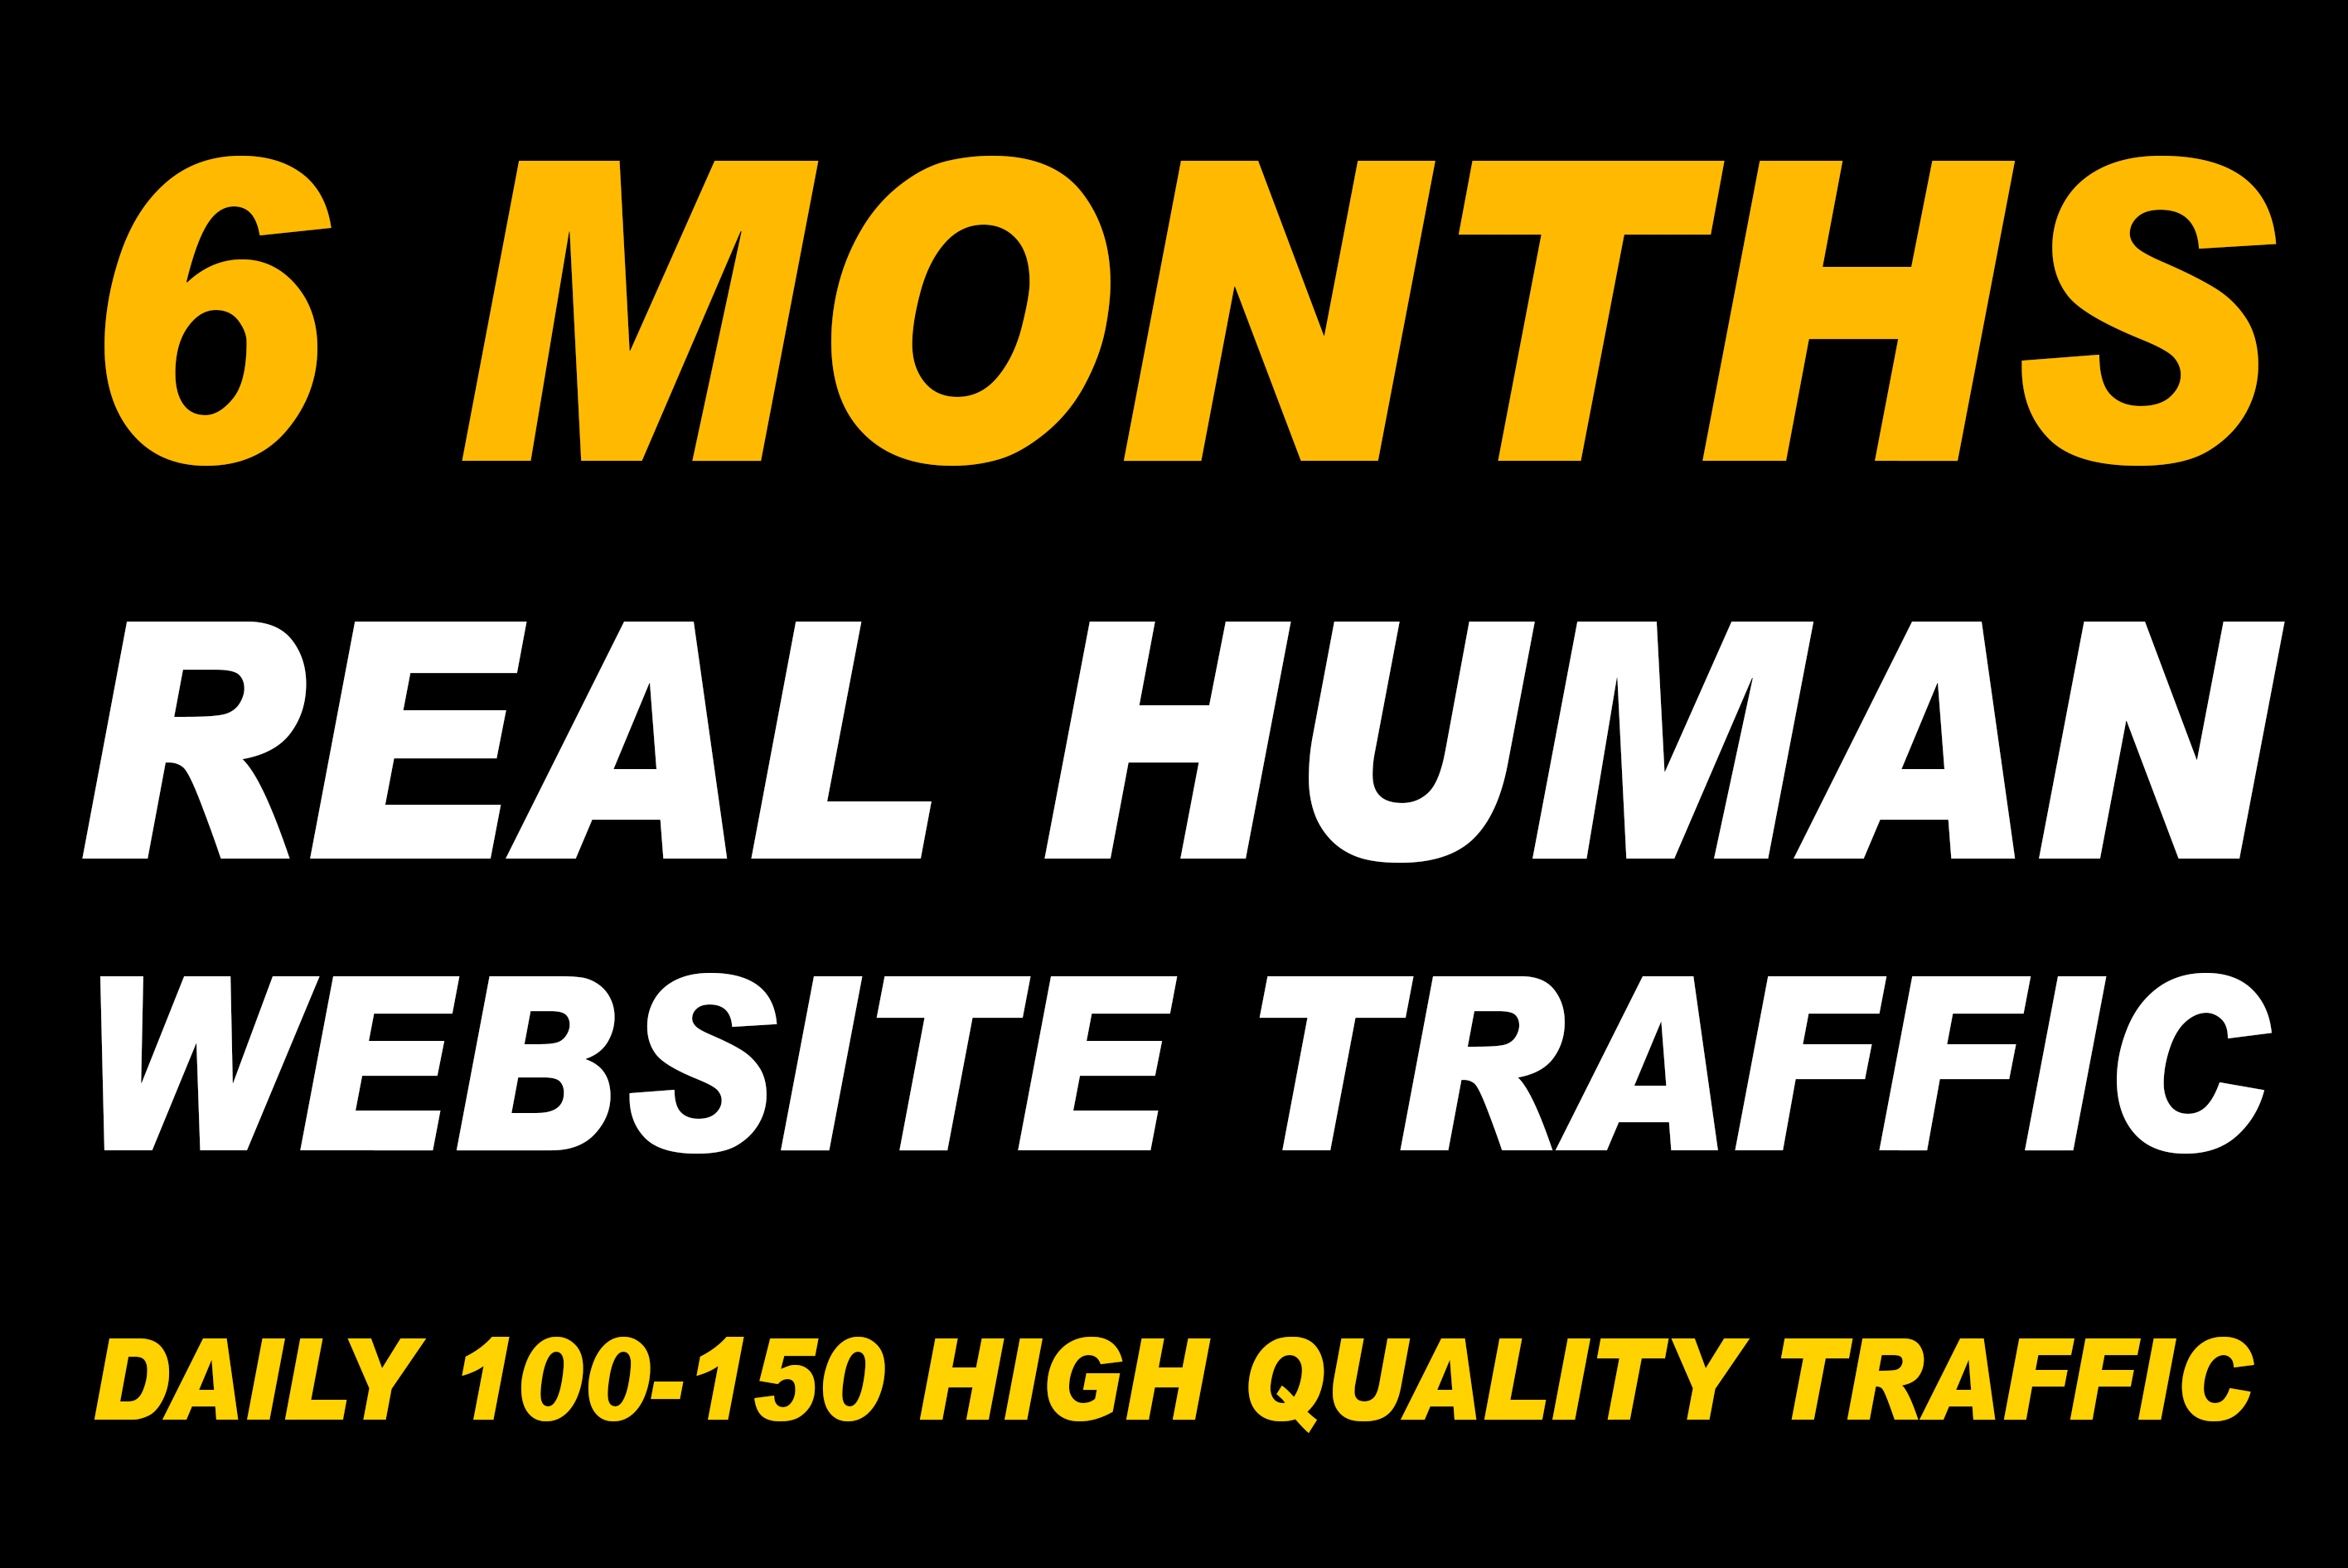 I will send 6 Months Real Human Website Traffic